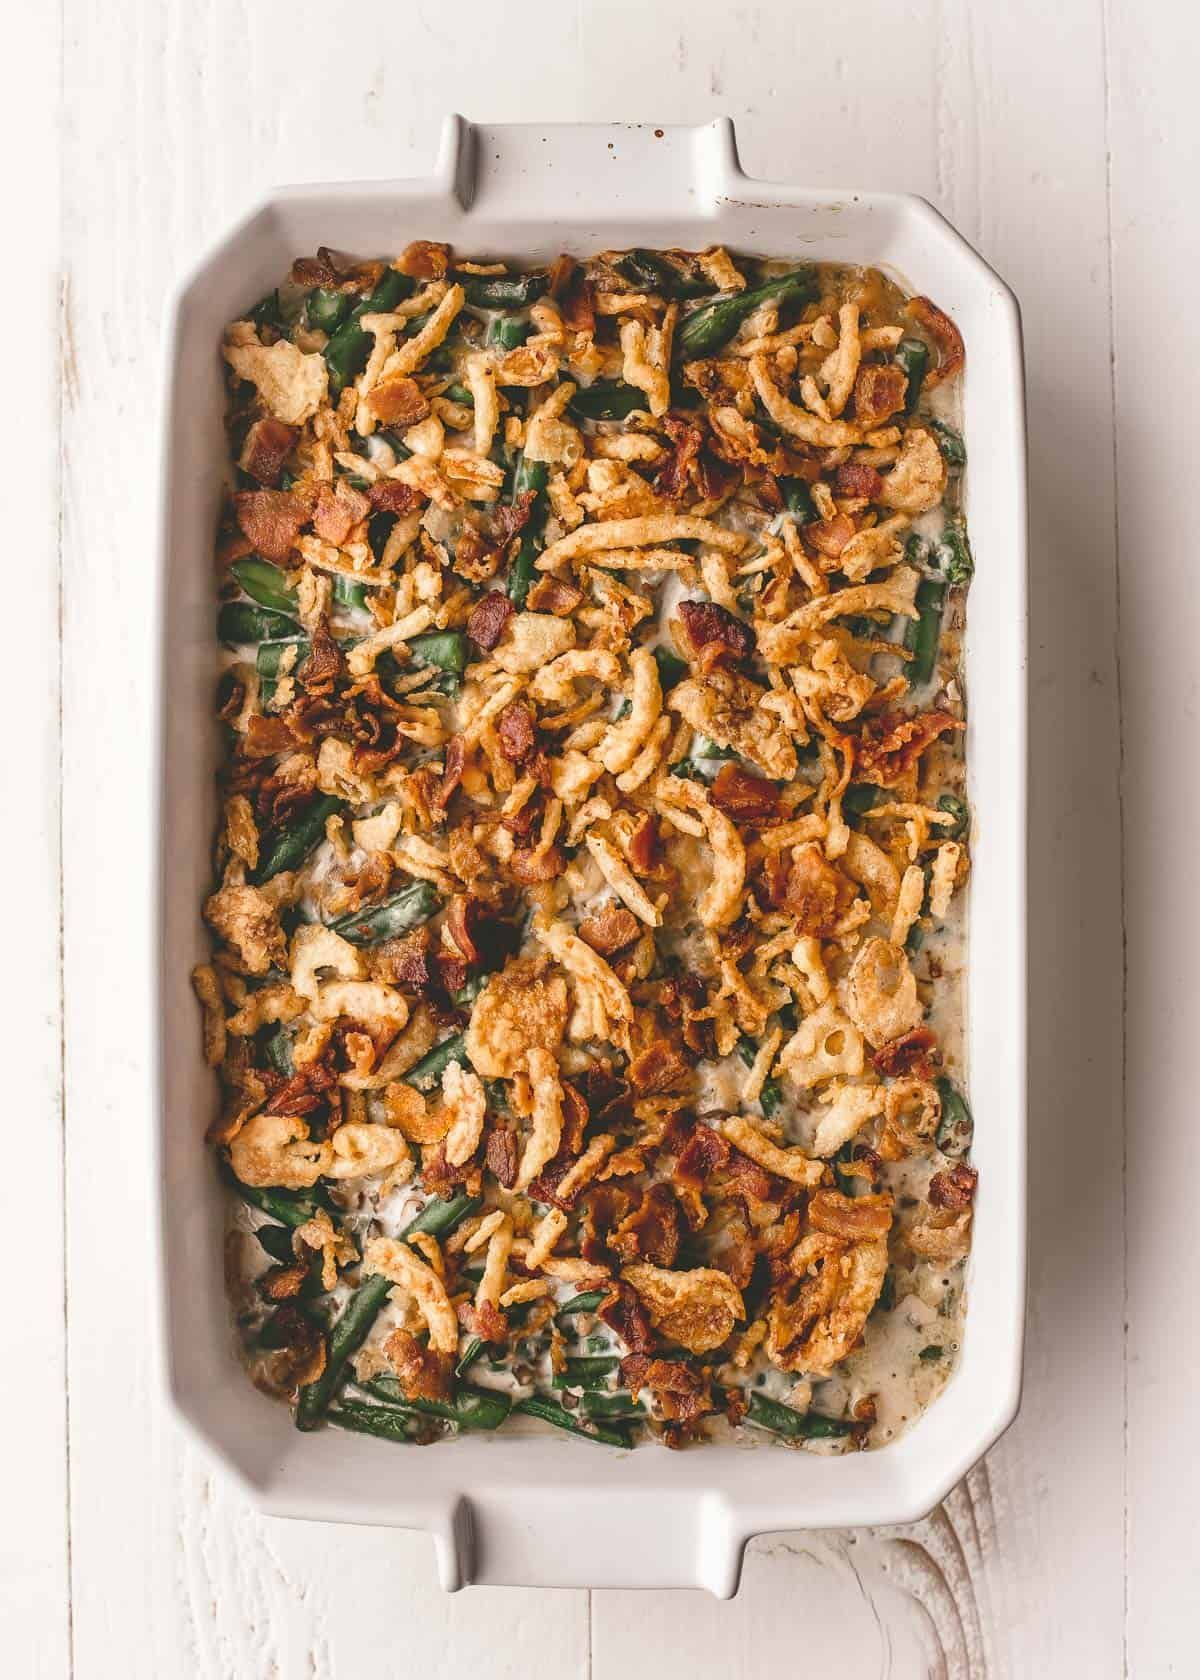 Homemade Green Bean Casserole With Bacon Recipe In 2021 Easy Vegetable Recipes Easy Thanksgiving Recipes Green Beans